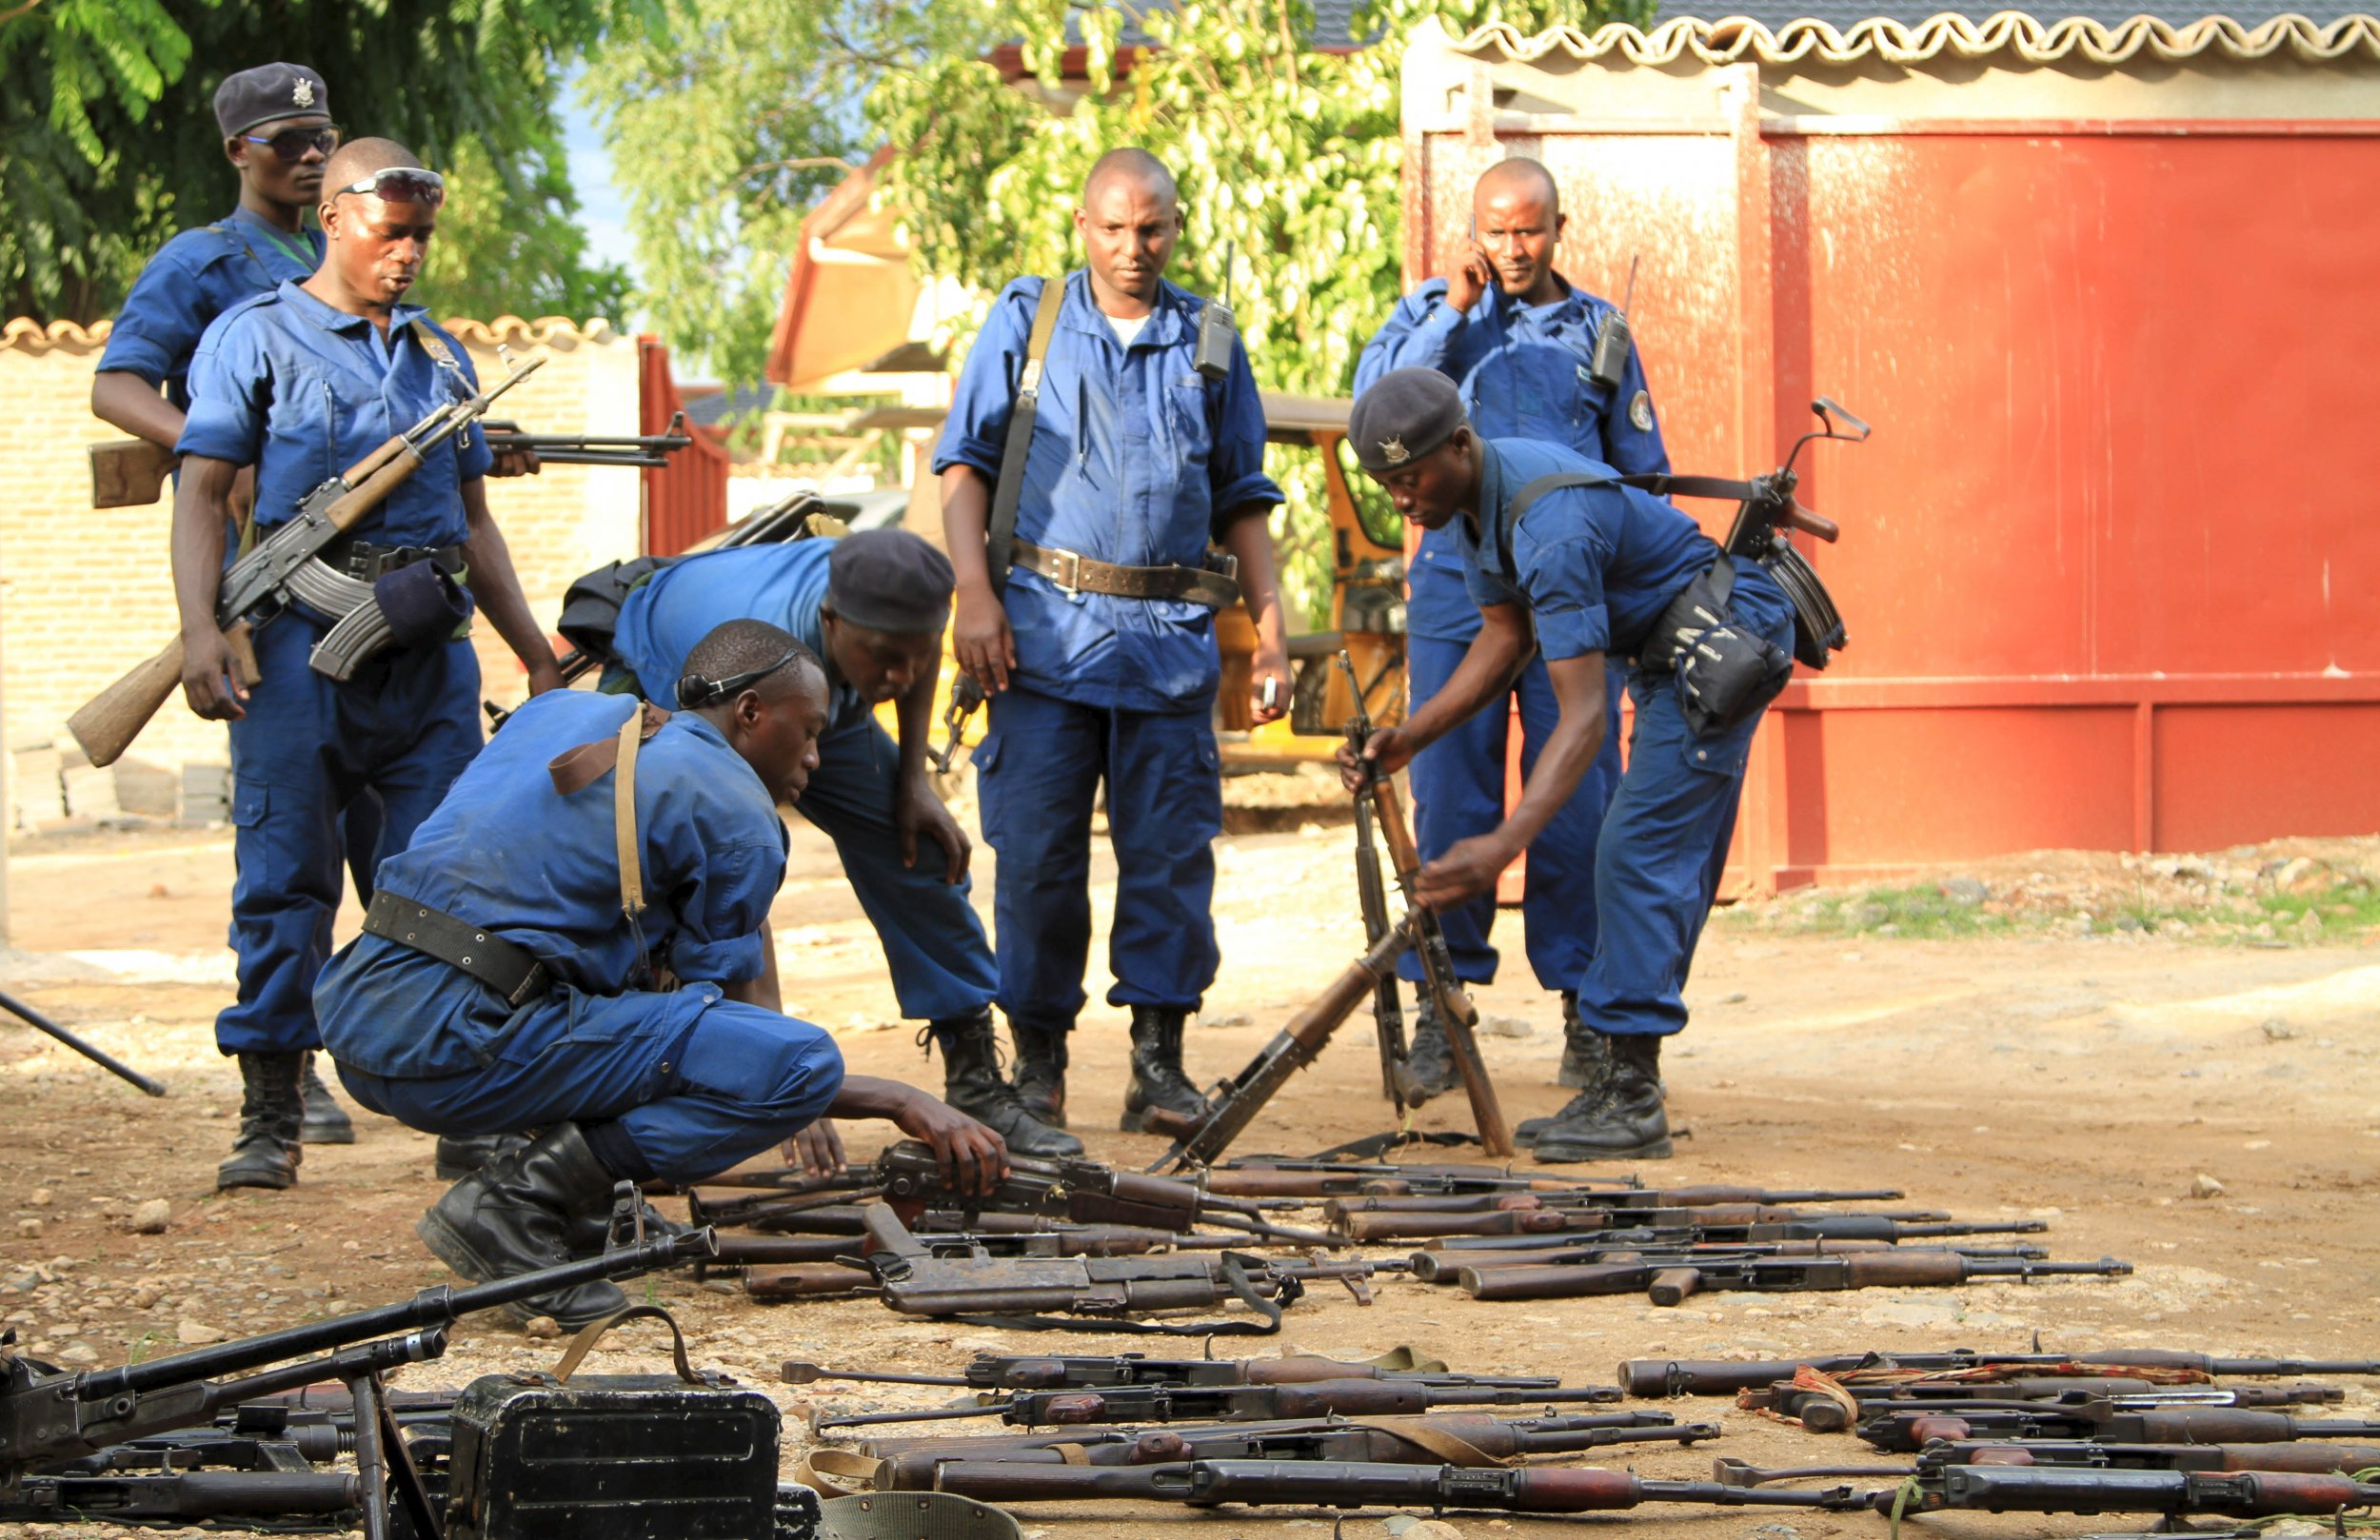 Burundi police collect weapons from suspected fighters in Bujumbura.